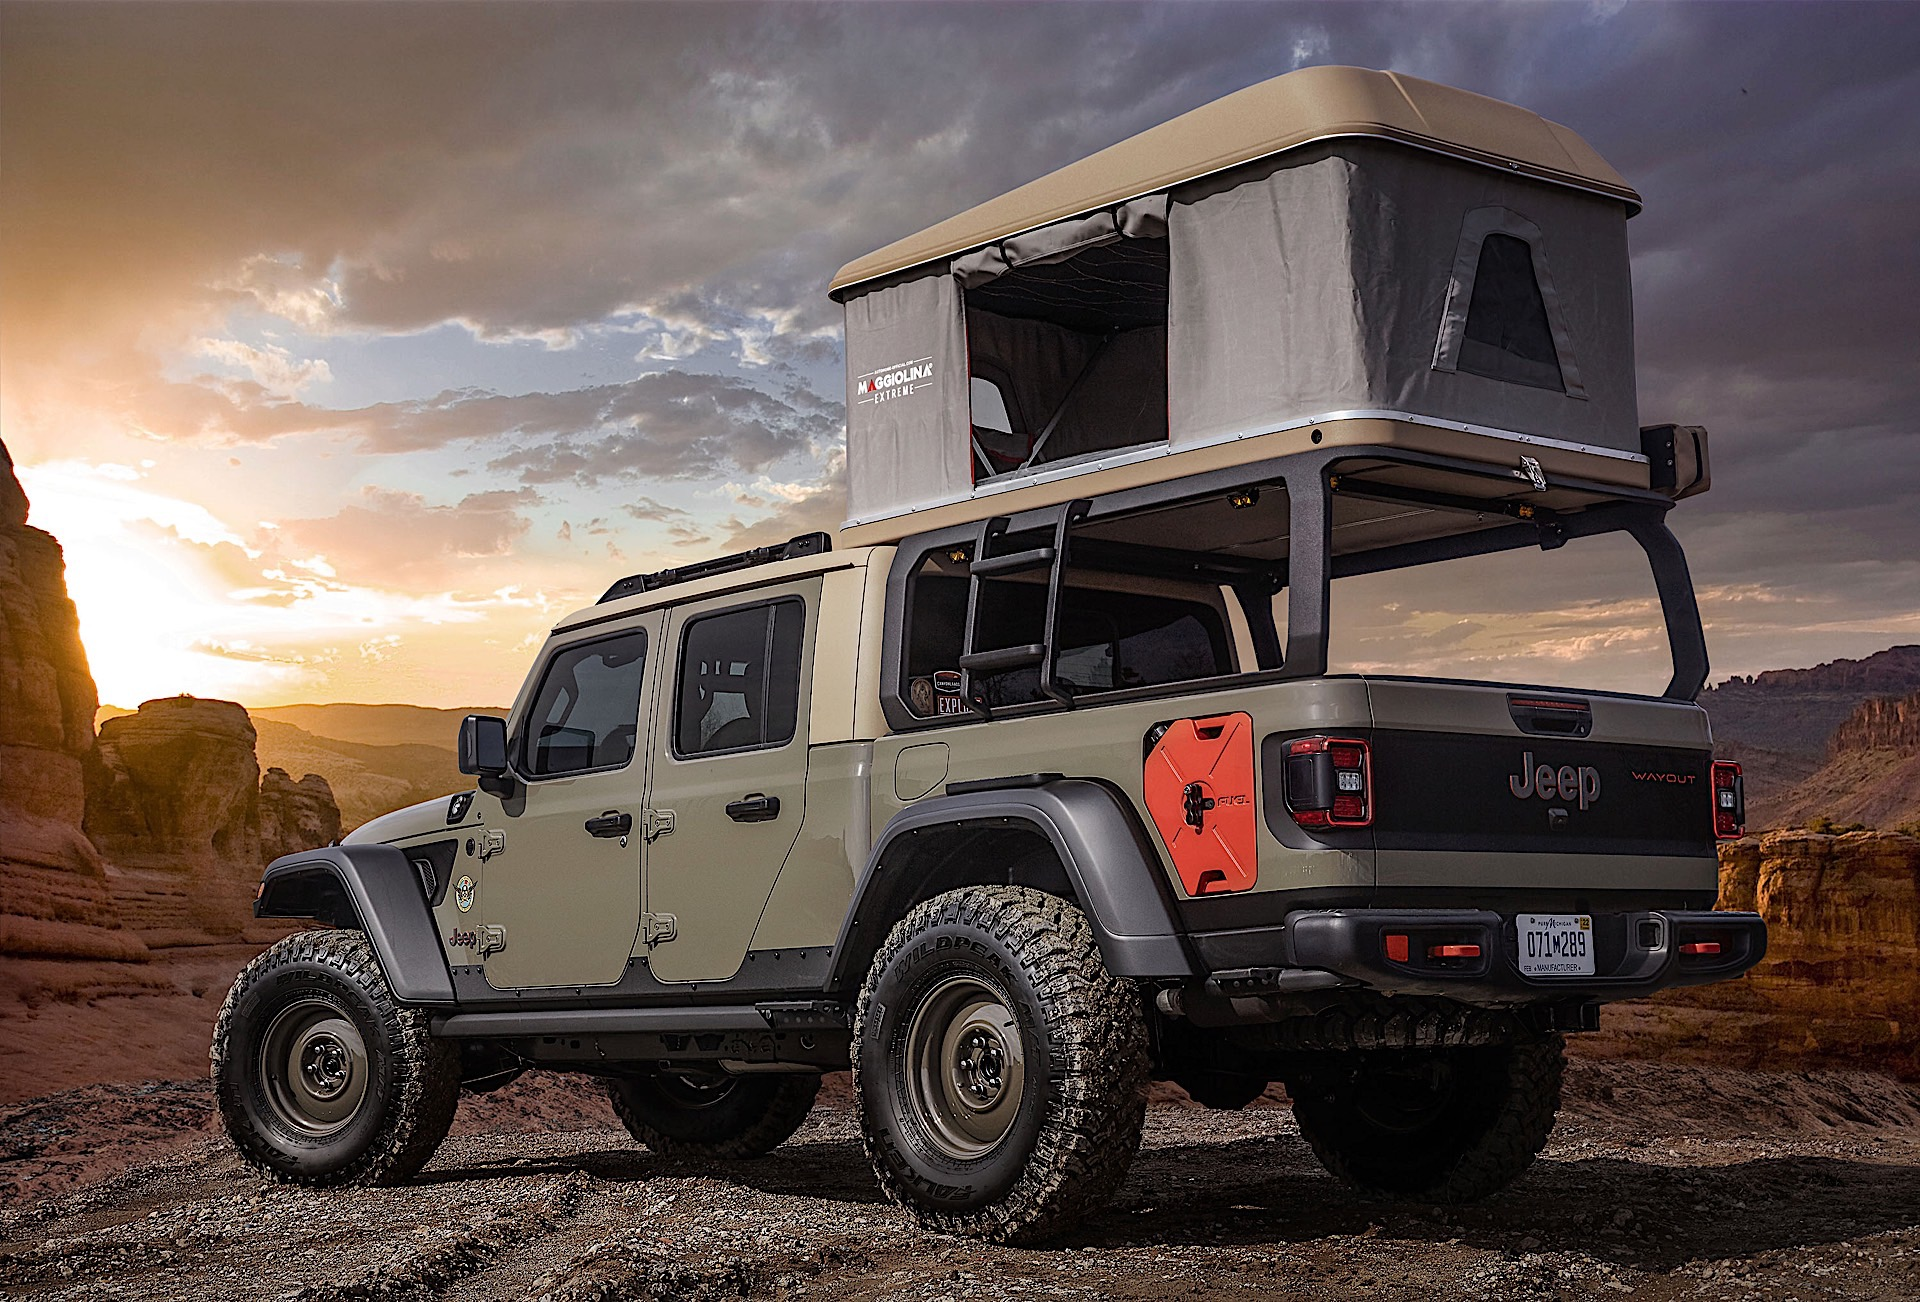 Pickup Truck Bed Tent >> 2020 Jeep Gladiator Pickup Truck Dominates 2019 Easter Jeep Safari Concepts - The Drive